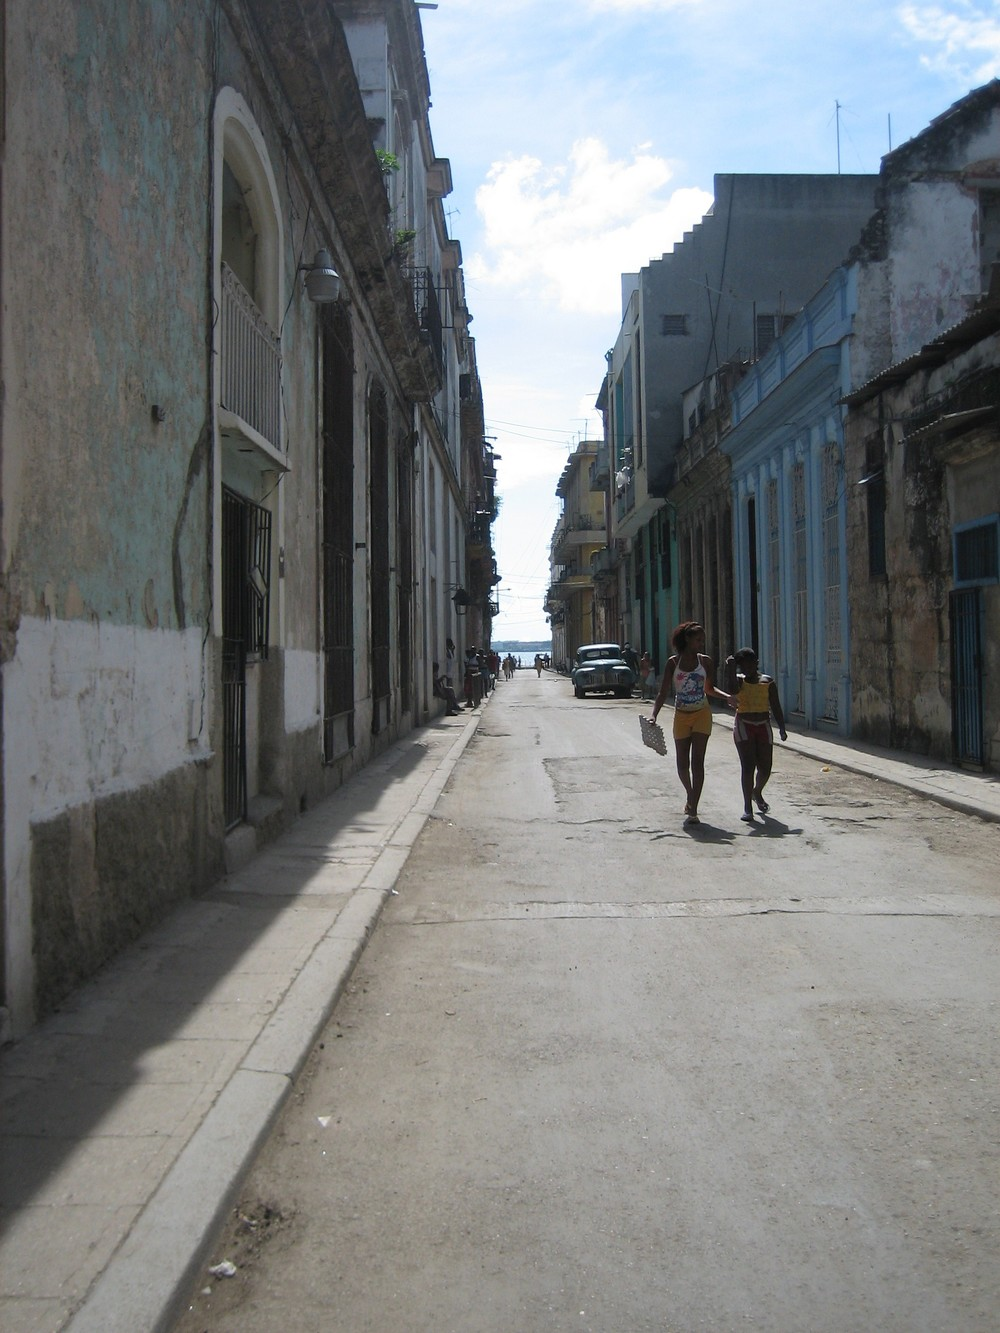 havana, cuba, may - june 2008 687.jpg